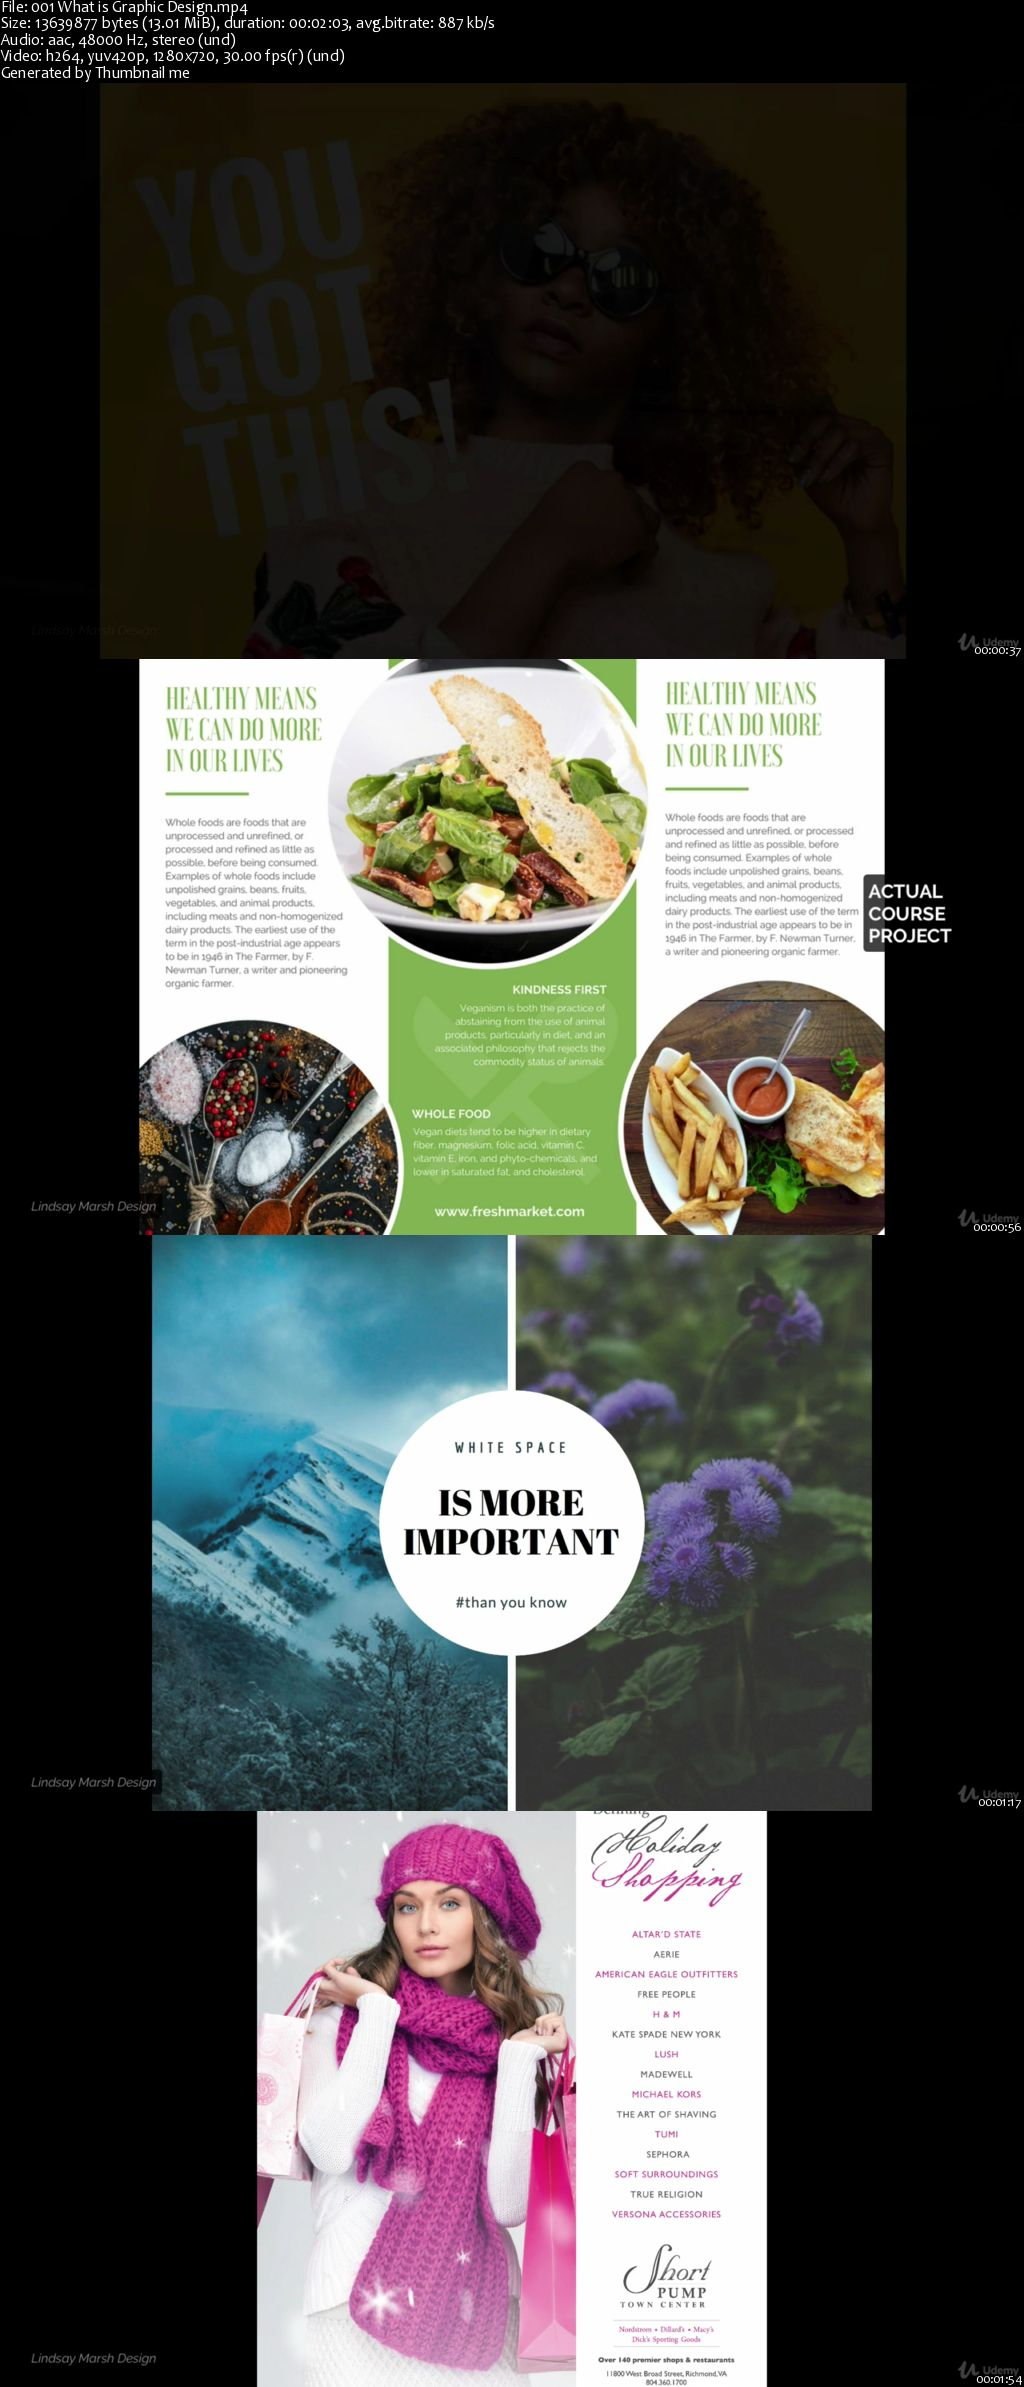 Graphic Design Foundations in Canva: Theory and Projects